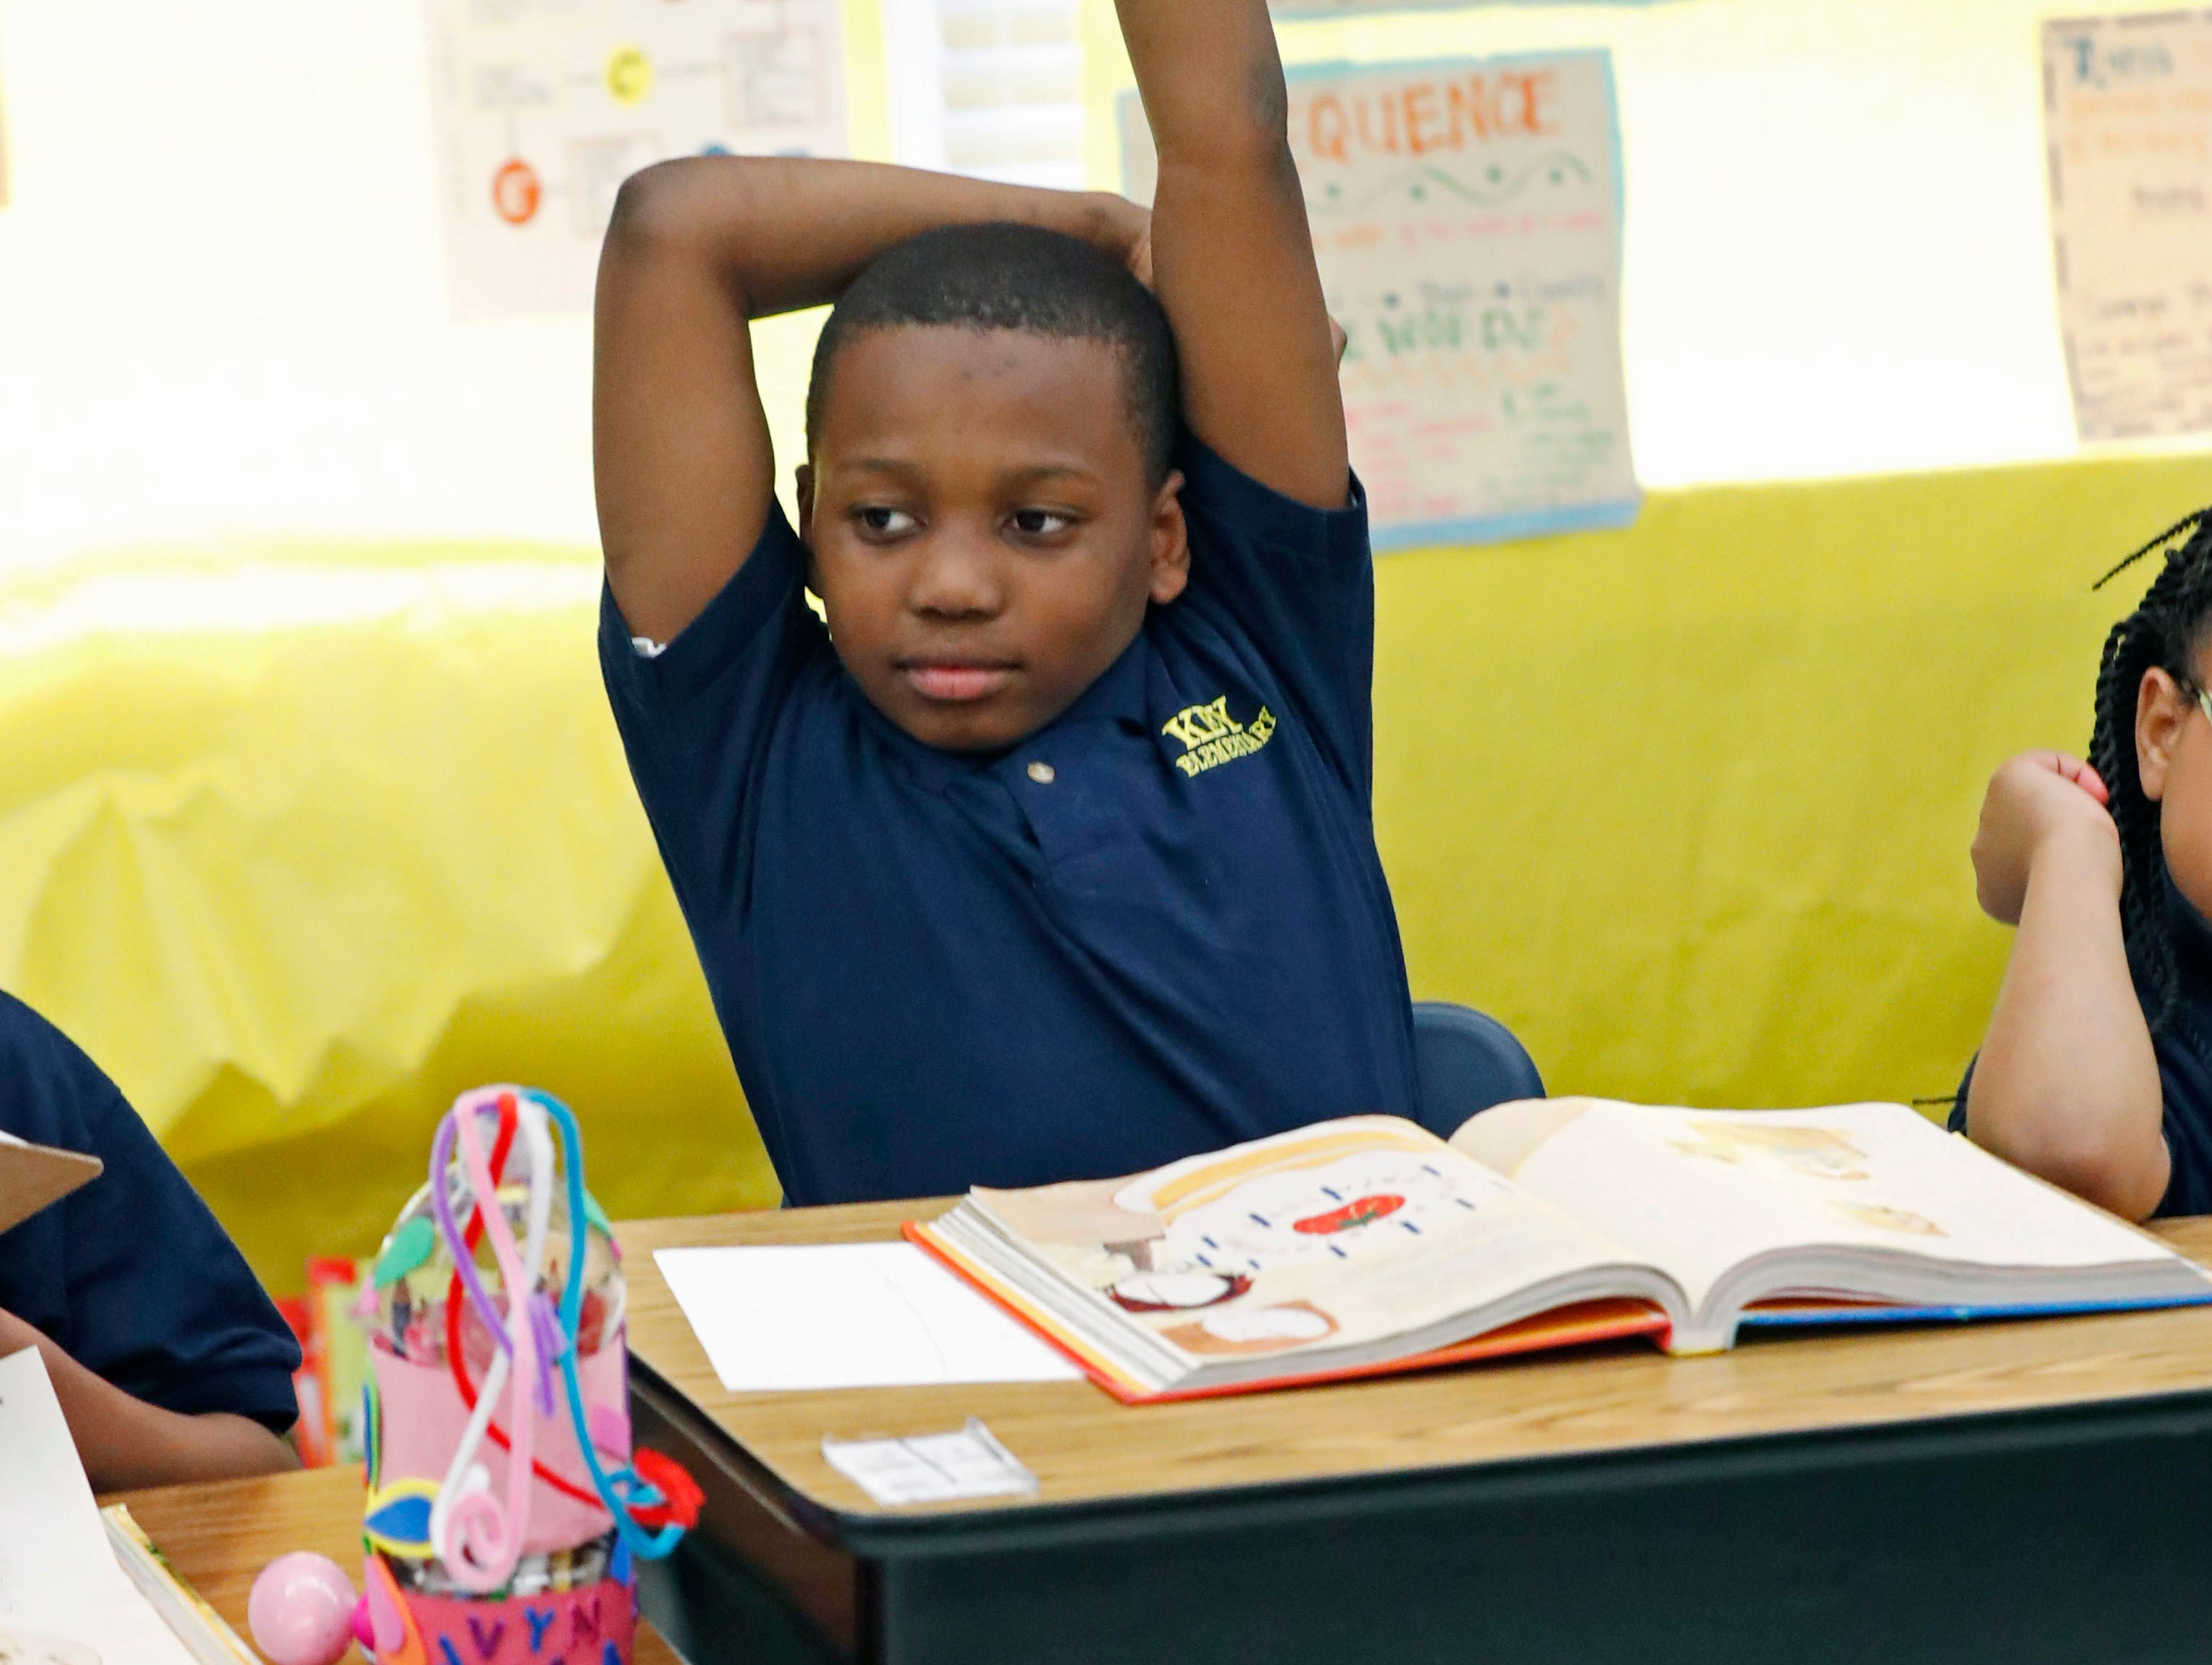 """Anthony Wilder, a Key Elementary School third grade student, raises his arm with a reading question answer Thursday, April 18, 2019, in Jackson, Miss. More than 35,000 Mississippi third graders sat down in front of computers this week to take reading tests, facing a state mandate to """"level up"""" or not advance to fourth grade. And with the bar set higher this year, state and local officials expect more students will fail the initial test, even with efforts to improve teaching. (AP Photo/Rogelio V. Solis)"""